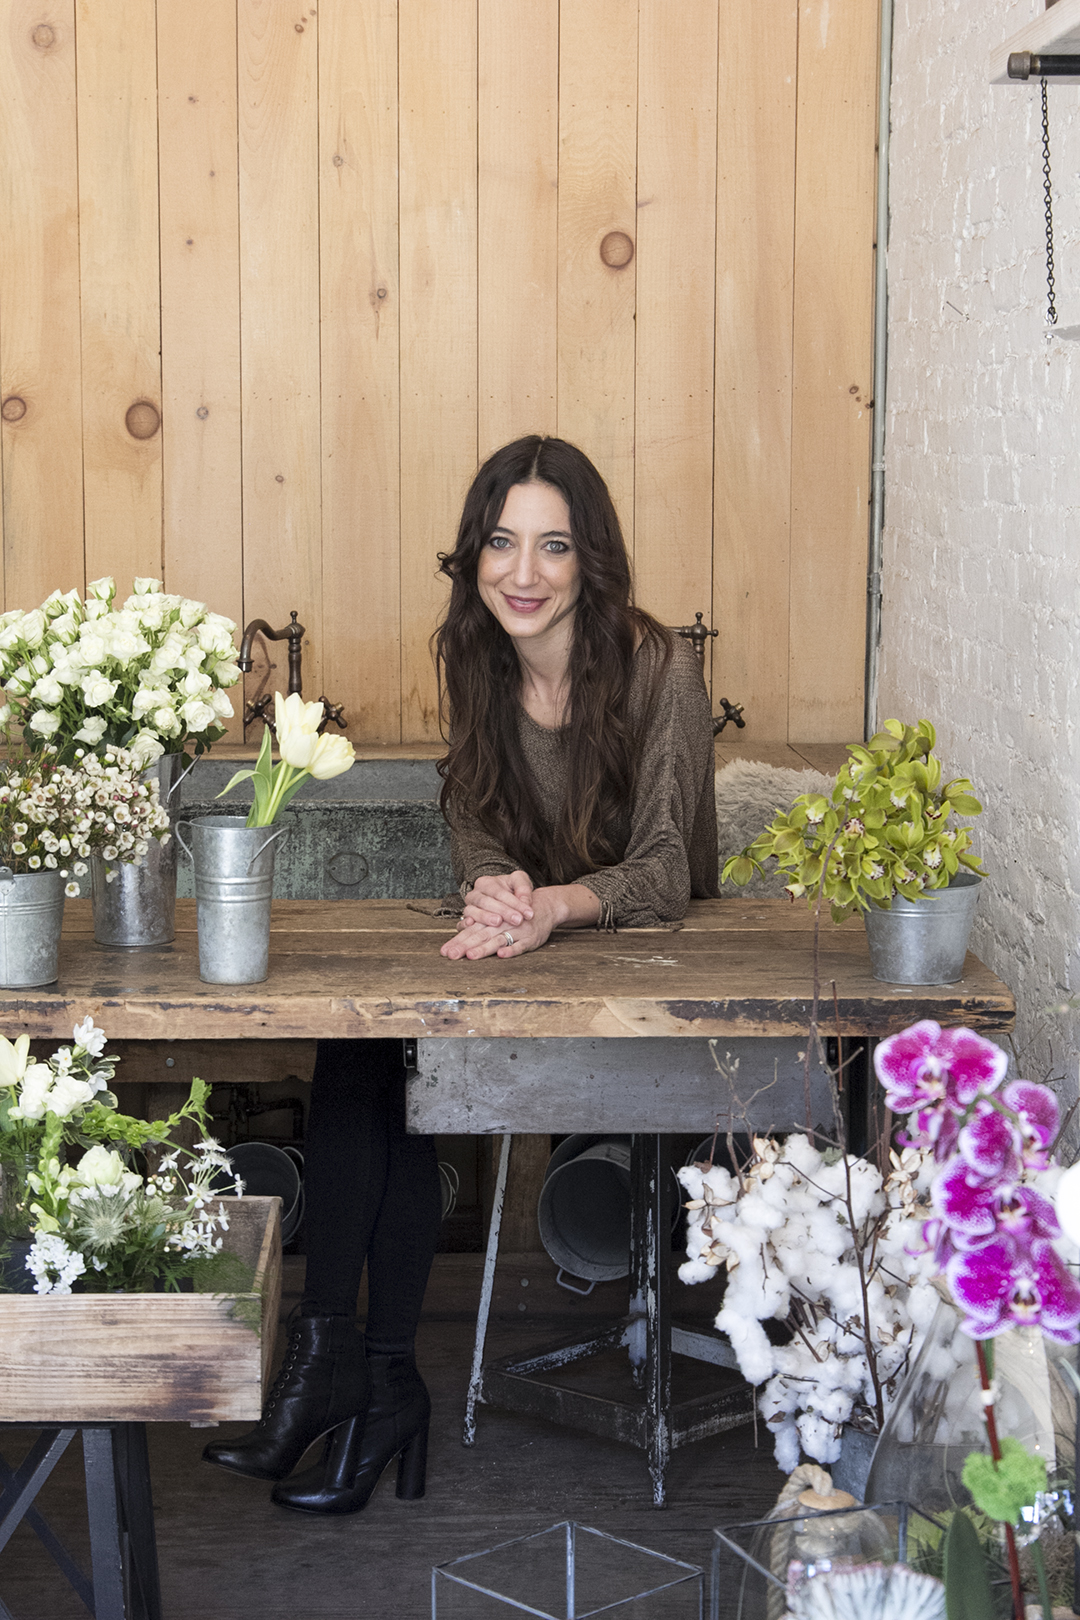 Flower Girl NYC founder, Denise Porcara